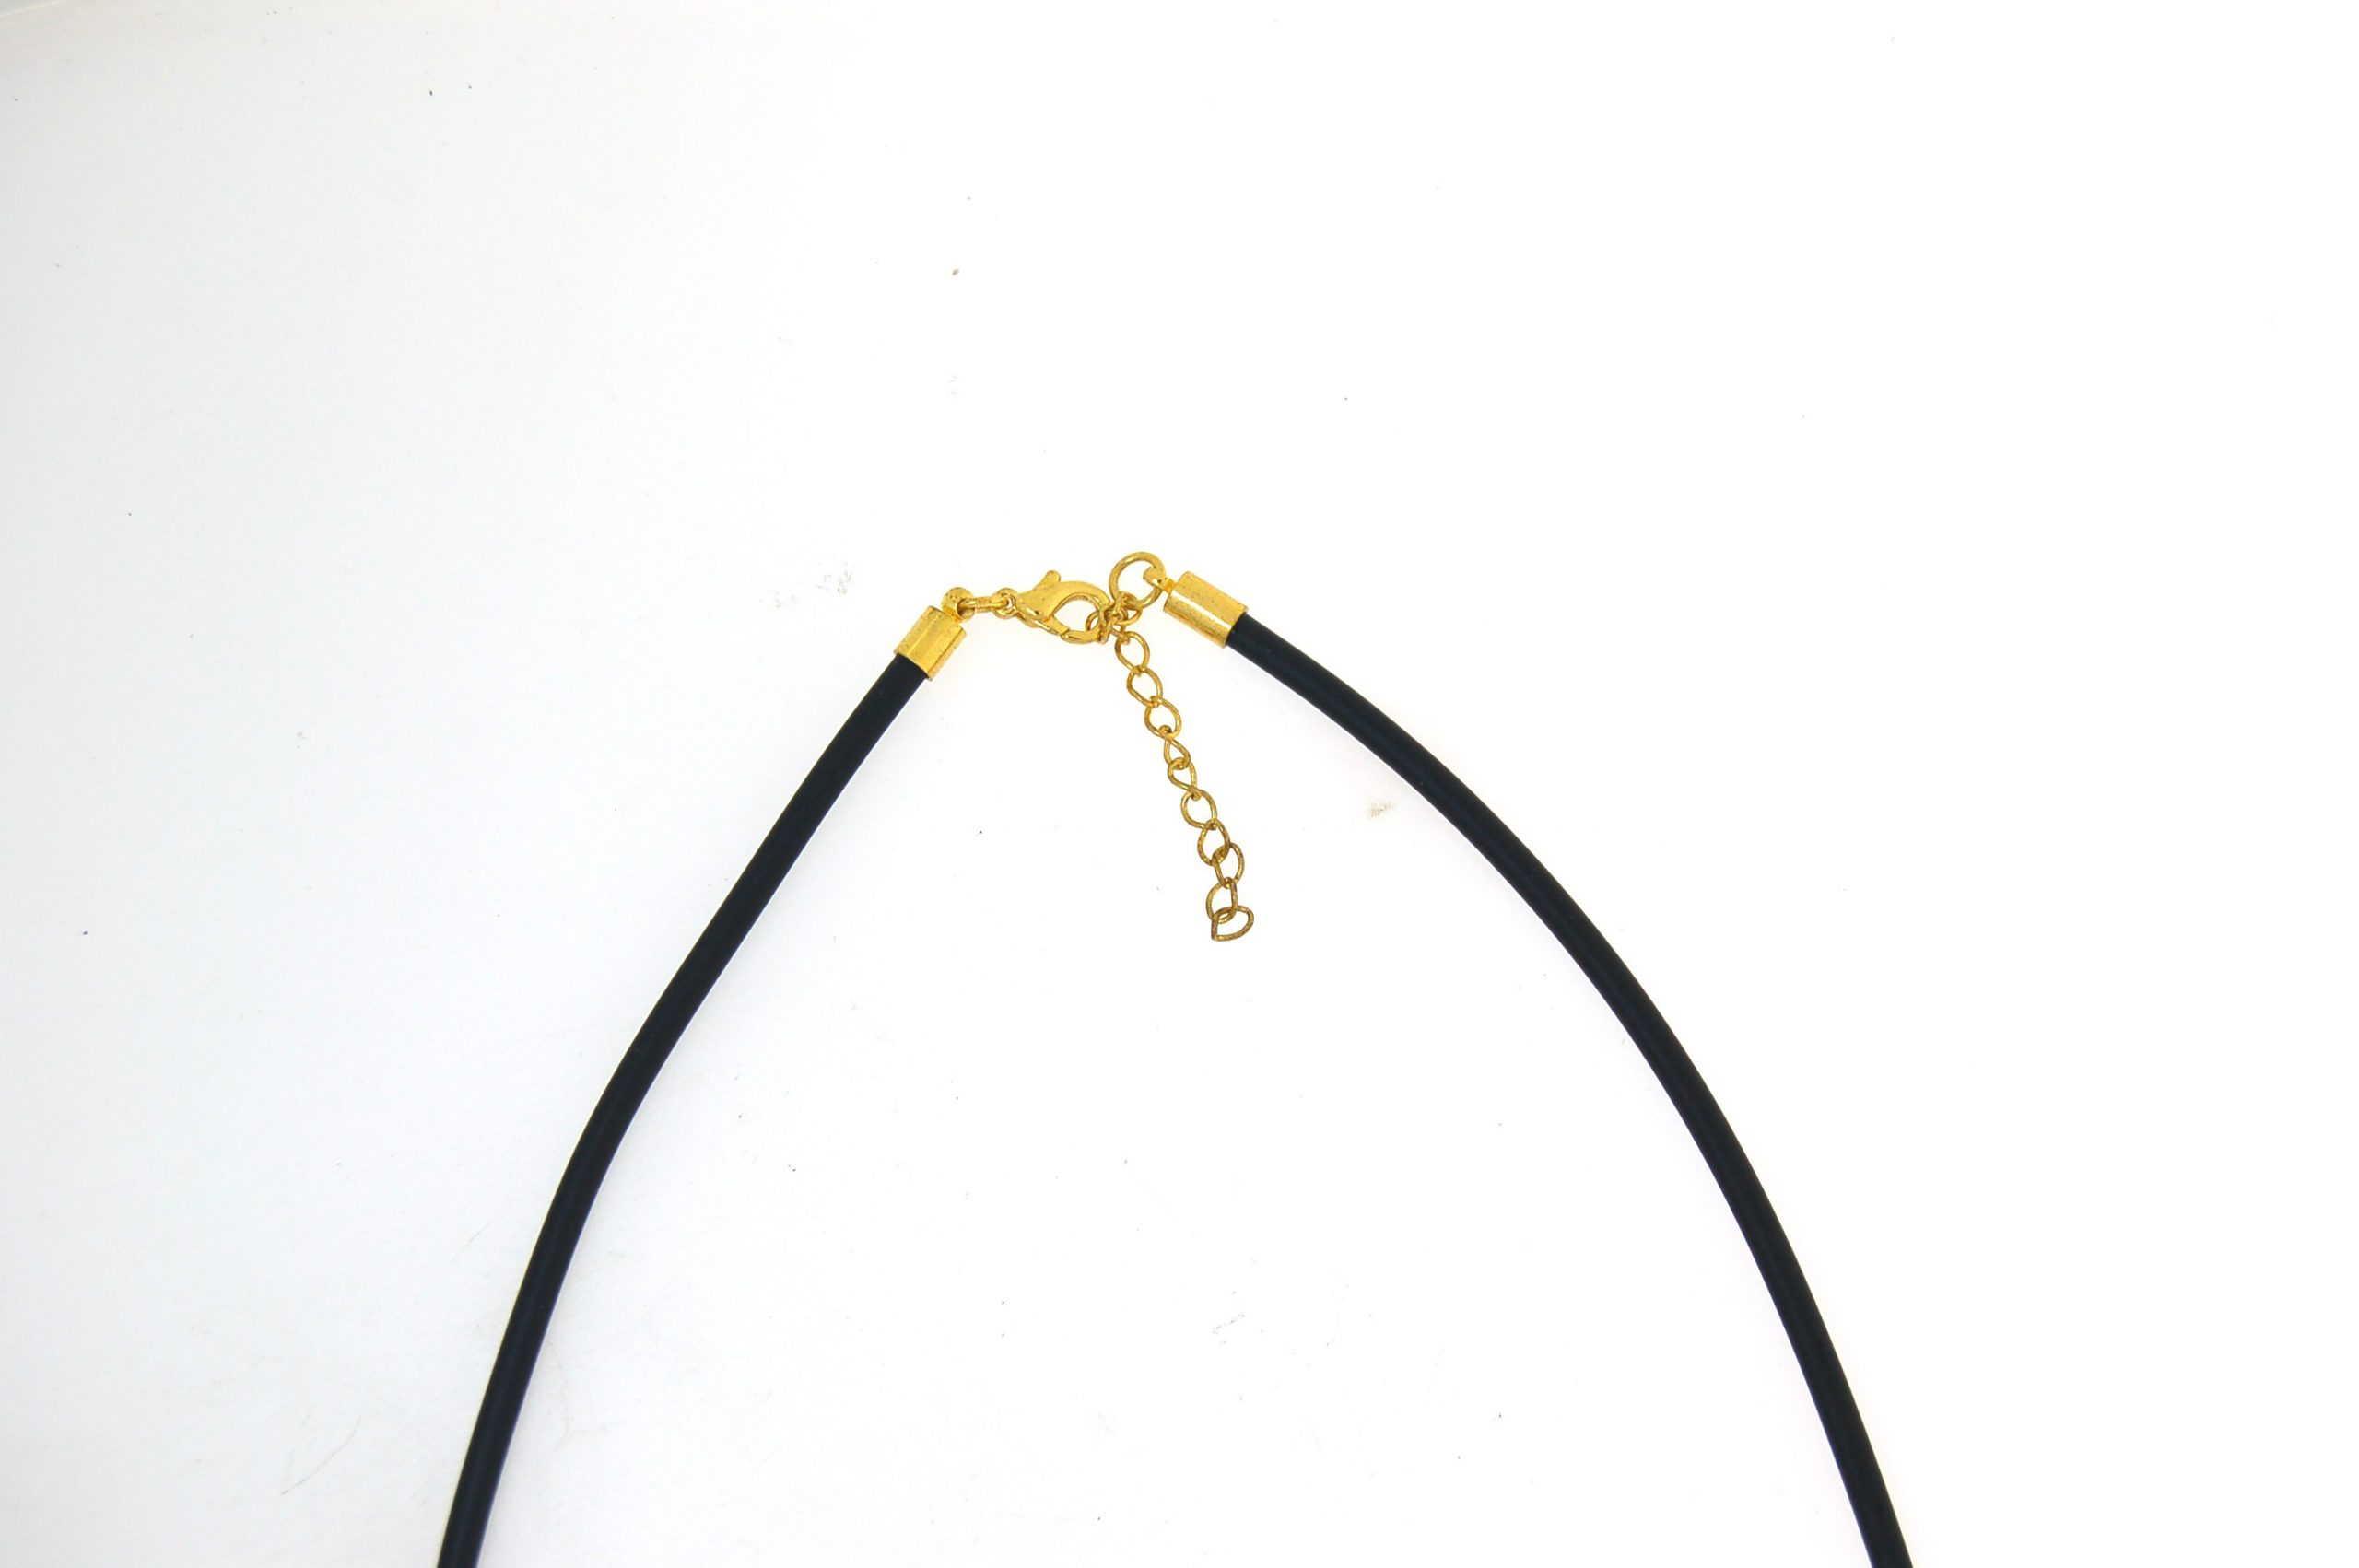 Leather Choker 2.5mm with Gold Plate Parrot Clasp